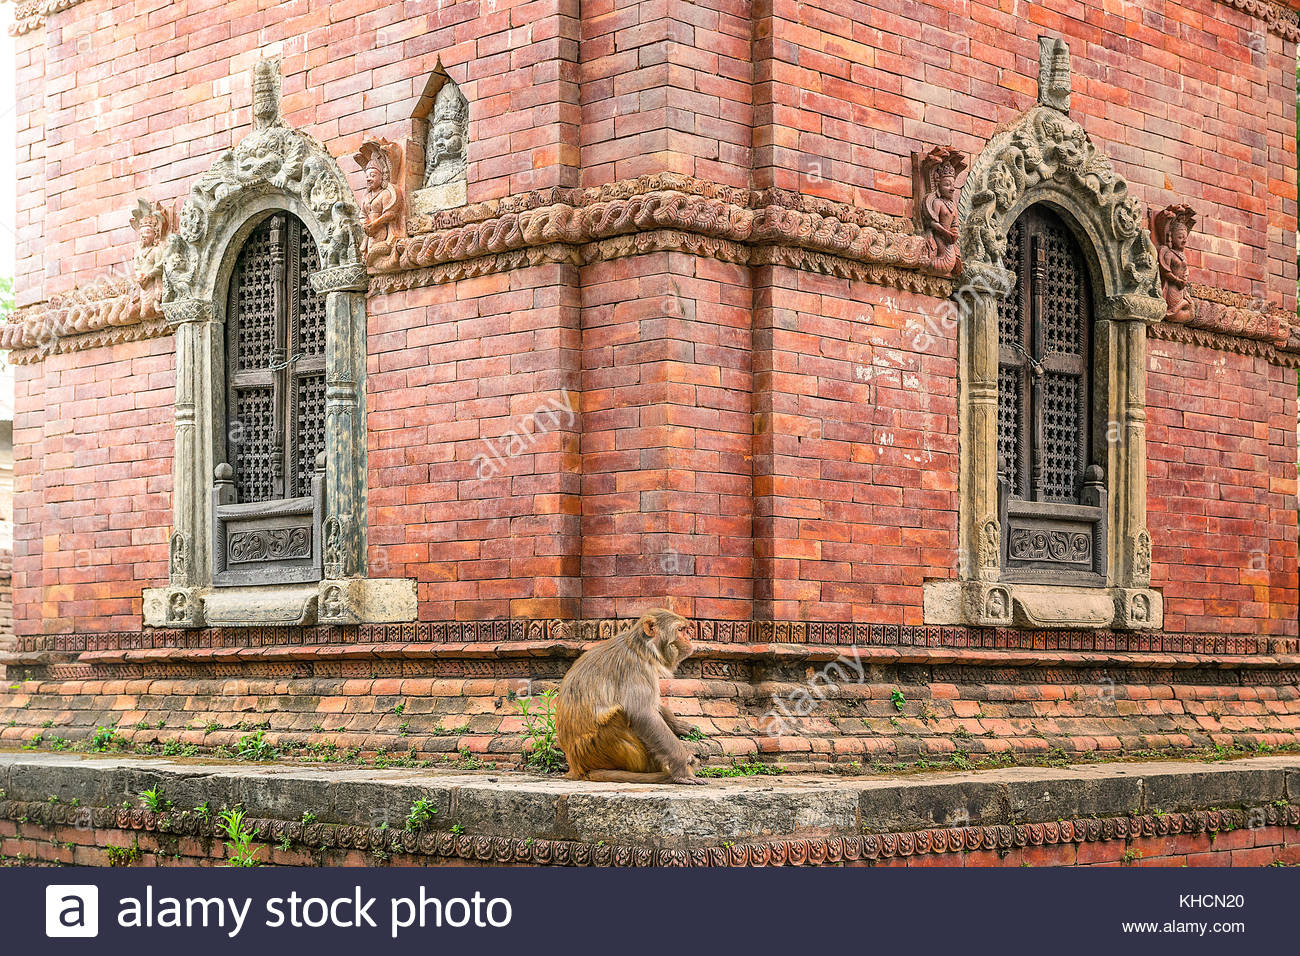 old stupa of briks with monkey in hinduist old temple in nepal. - Stock Image